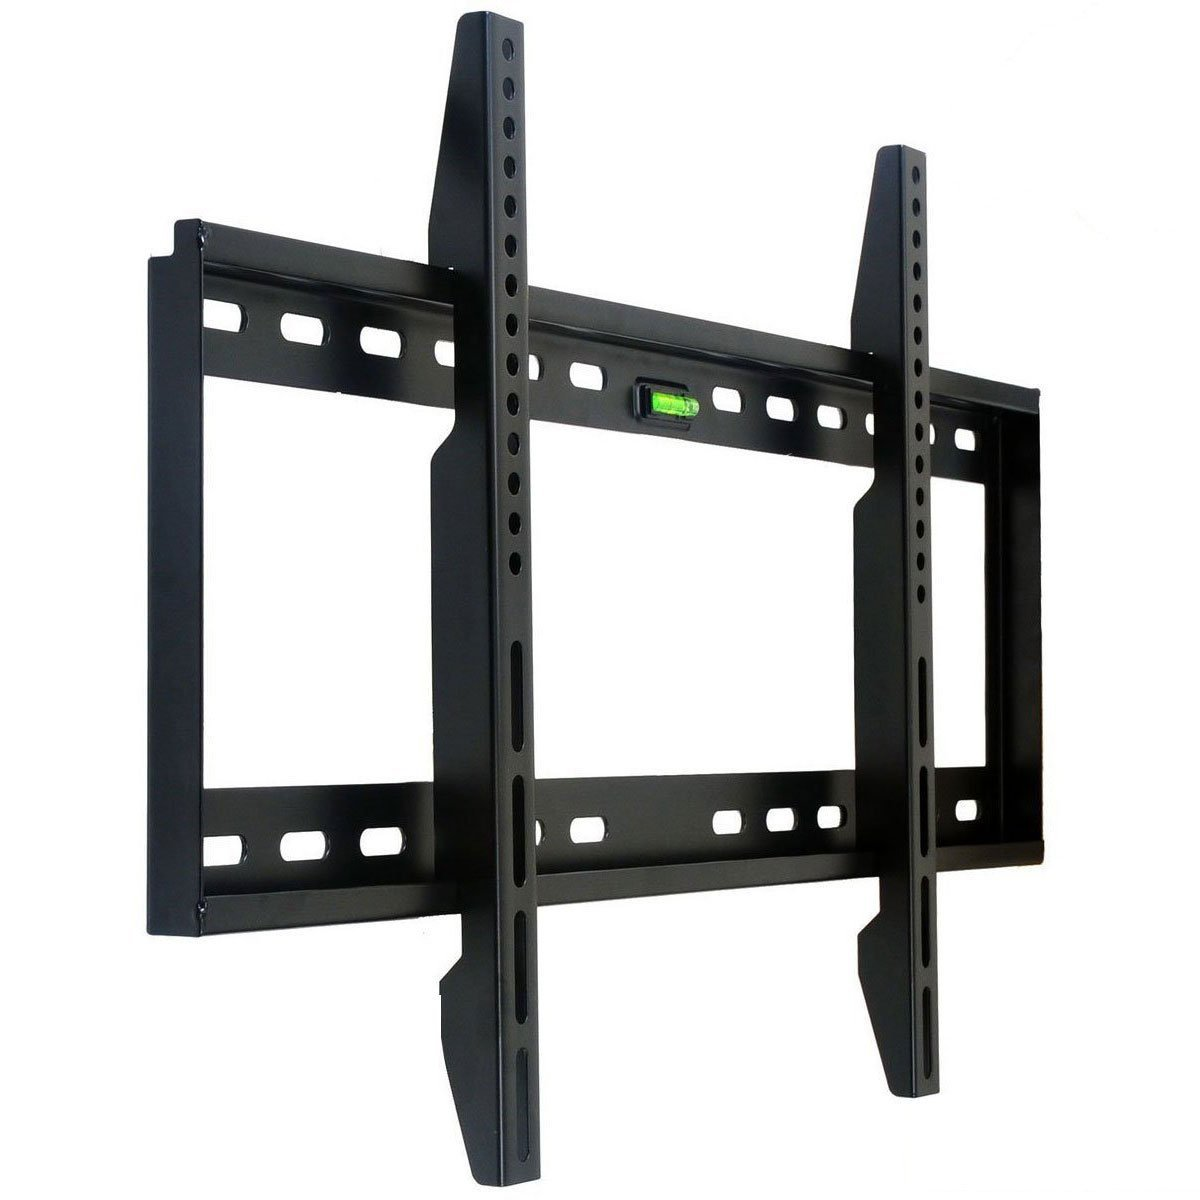 Ultra Slim TV Mount Fit LG 32LD350 32LD450 32LD550 32LE53...